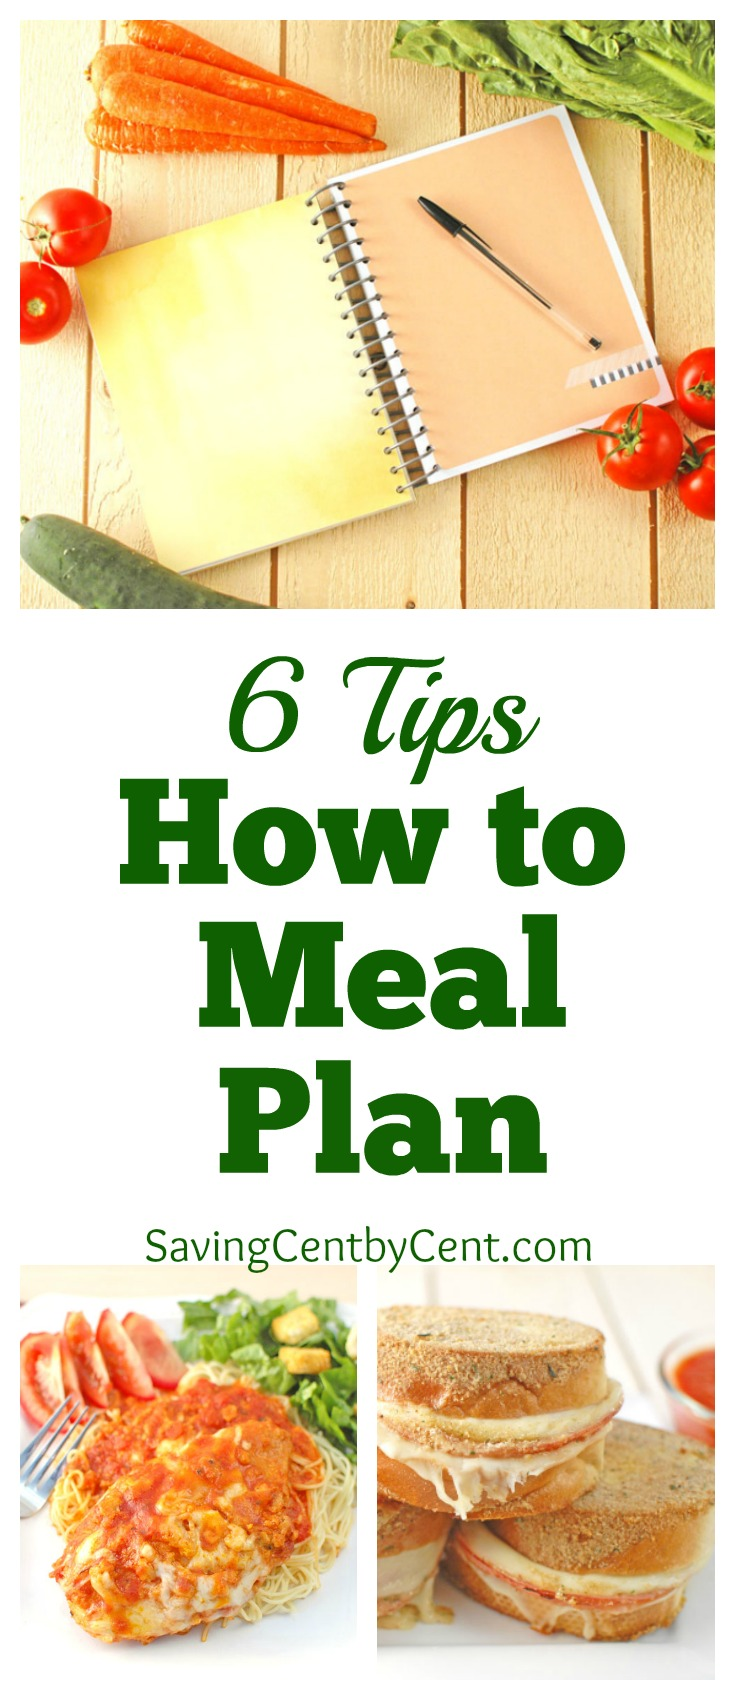 6 Tips How to Meal Plan